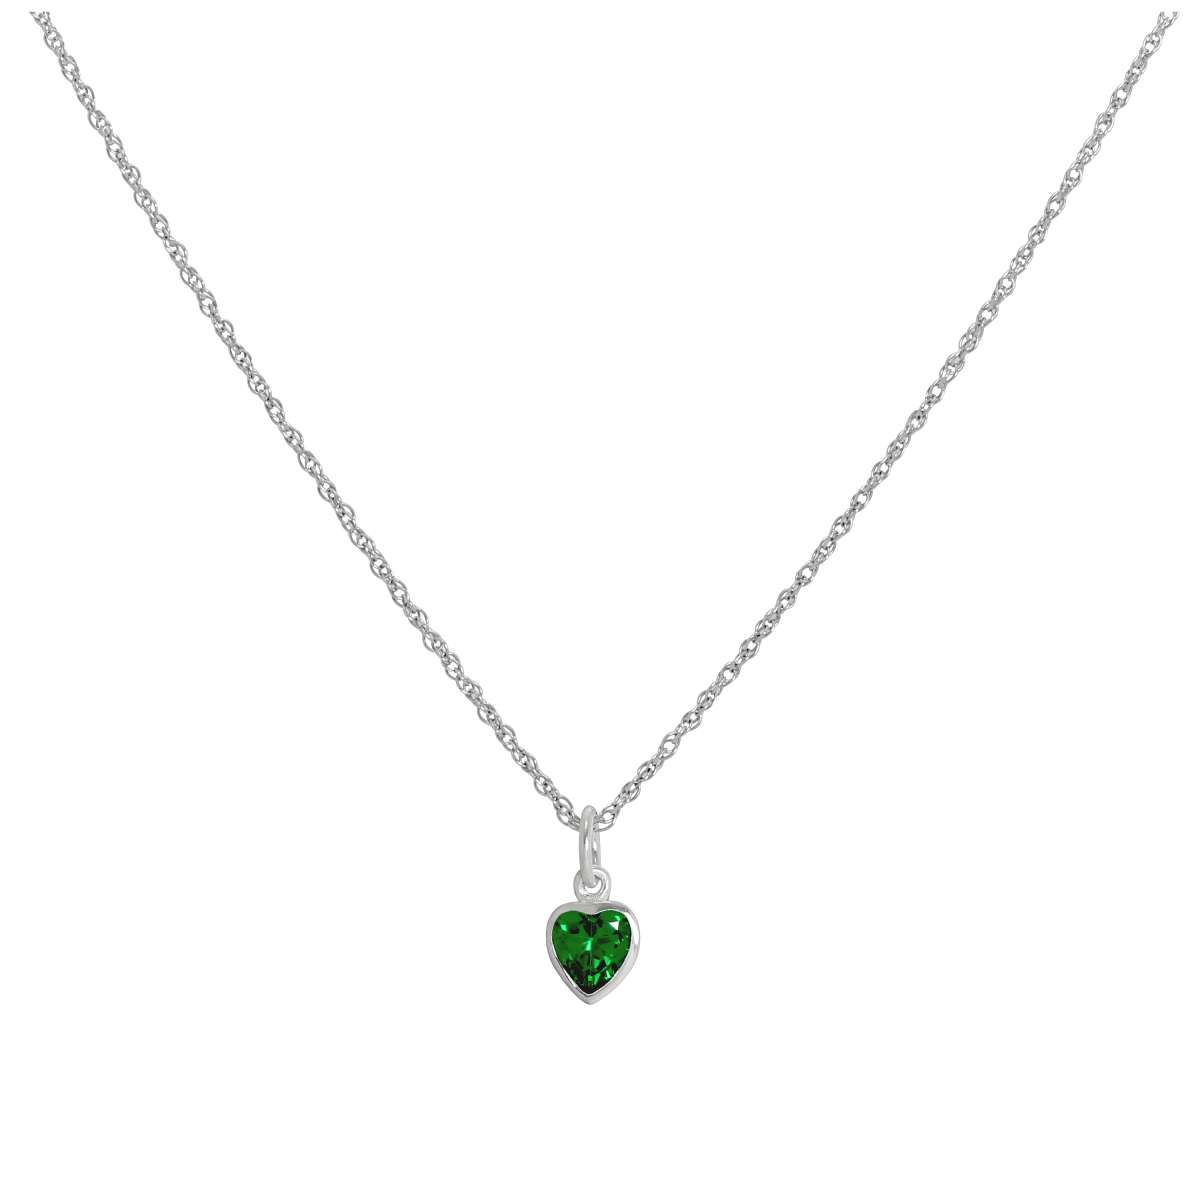 Sterling Silver Emerald Green Heart Crystal Pendant Necklace 14 – 22 Inches Within Latest Royal Green Crystal May Droplet Pendant Necklaces (View 21 of 25)